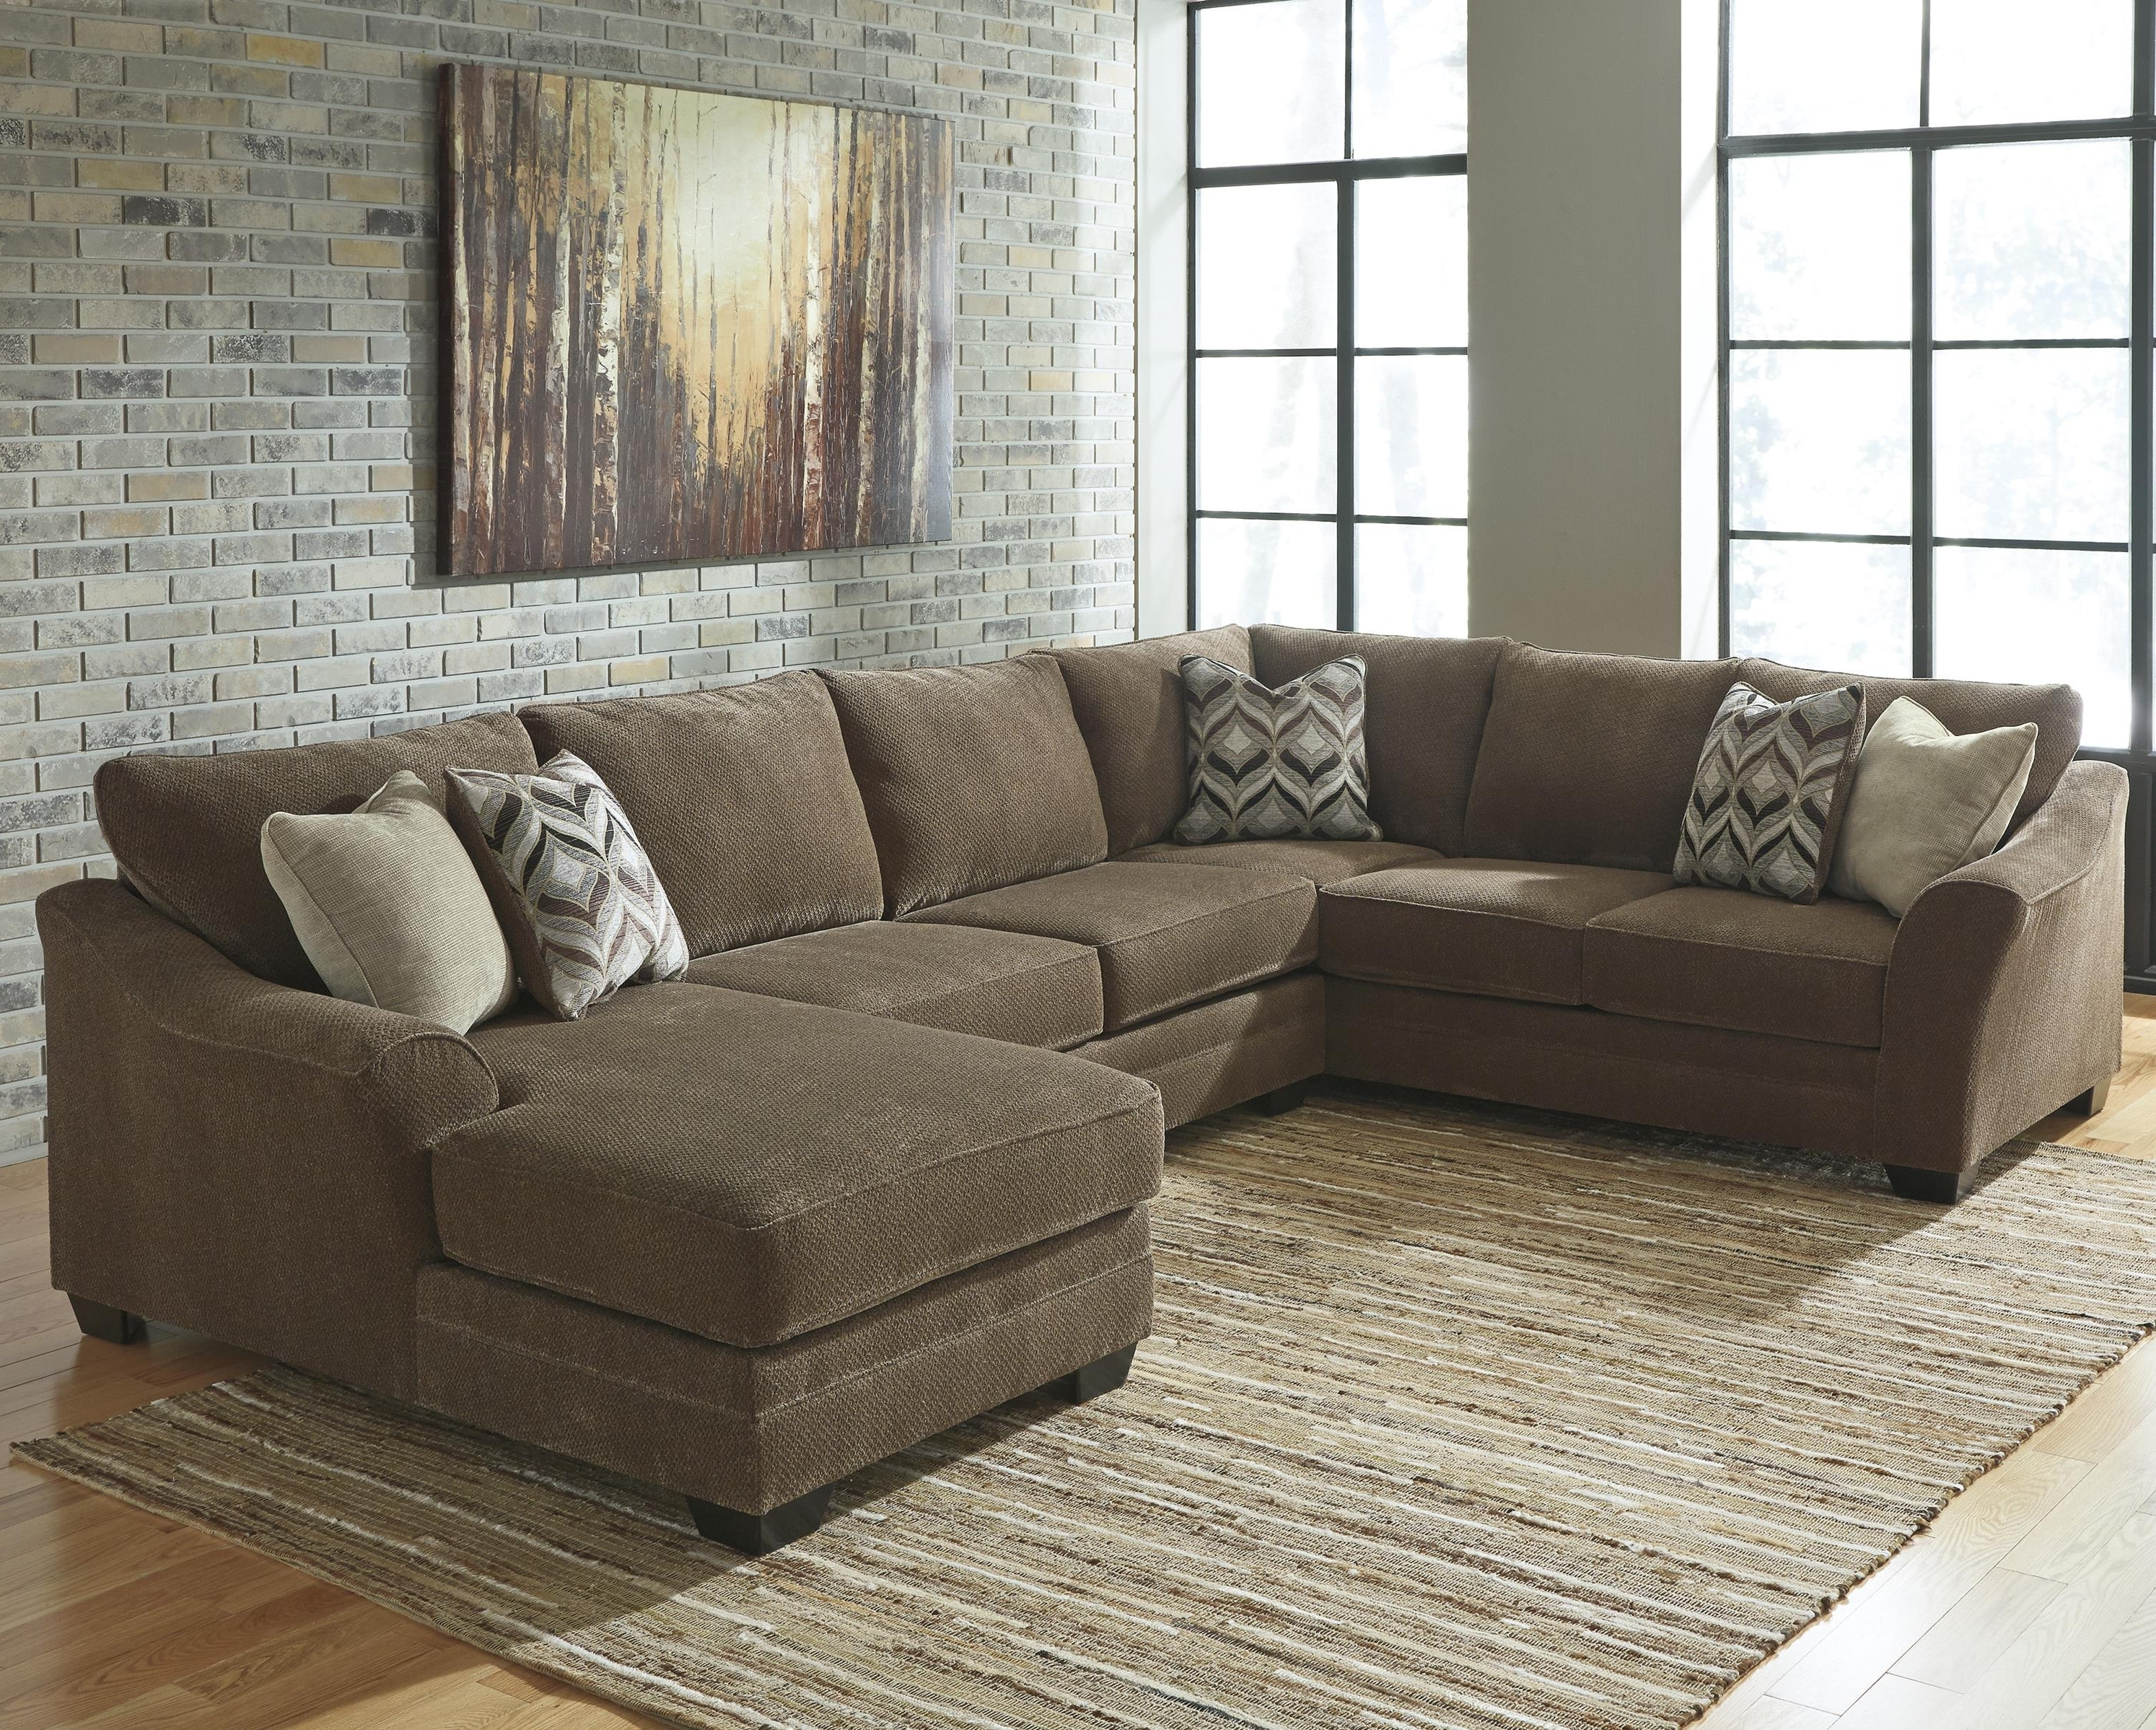 Regina Sectional Sofas Regarding Most Current Sofa Right Sectional Braxton Java Arm Facing Hand Pb Basic Chaise (View 8 of 15)